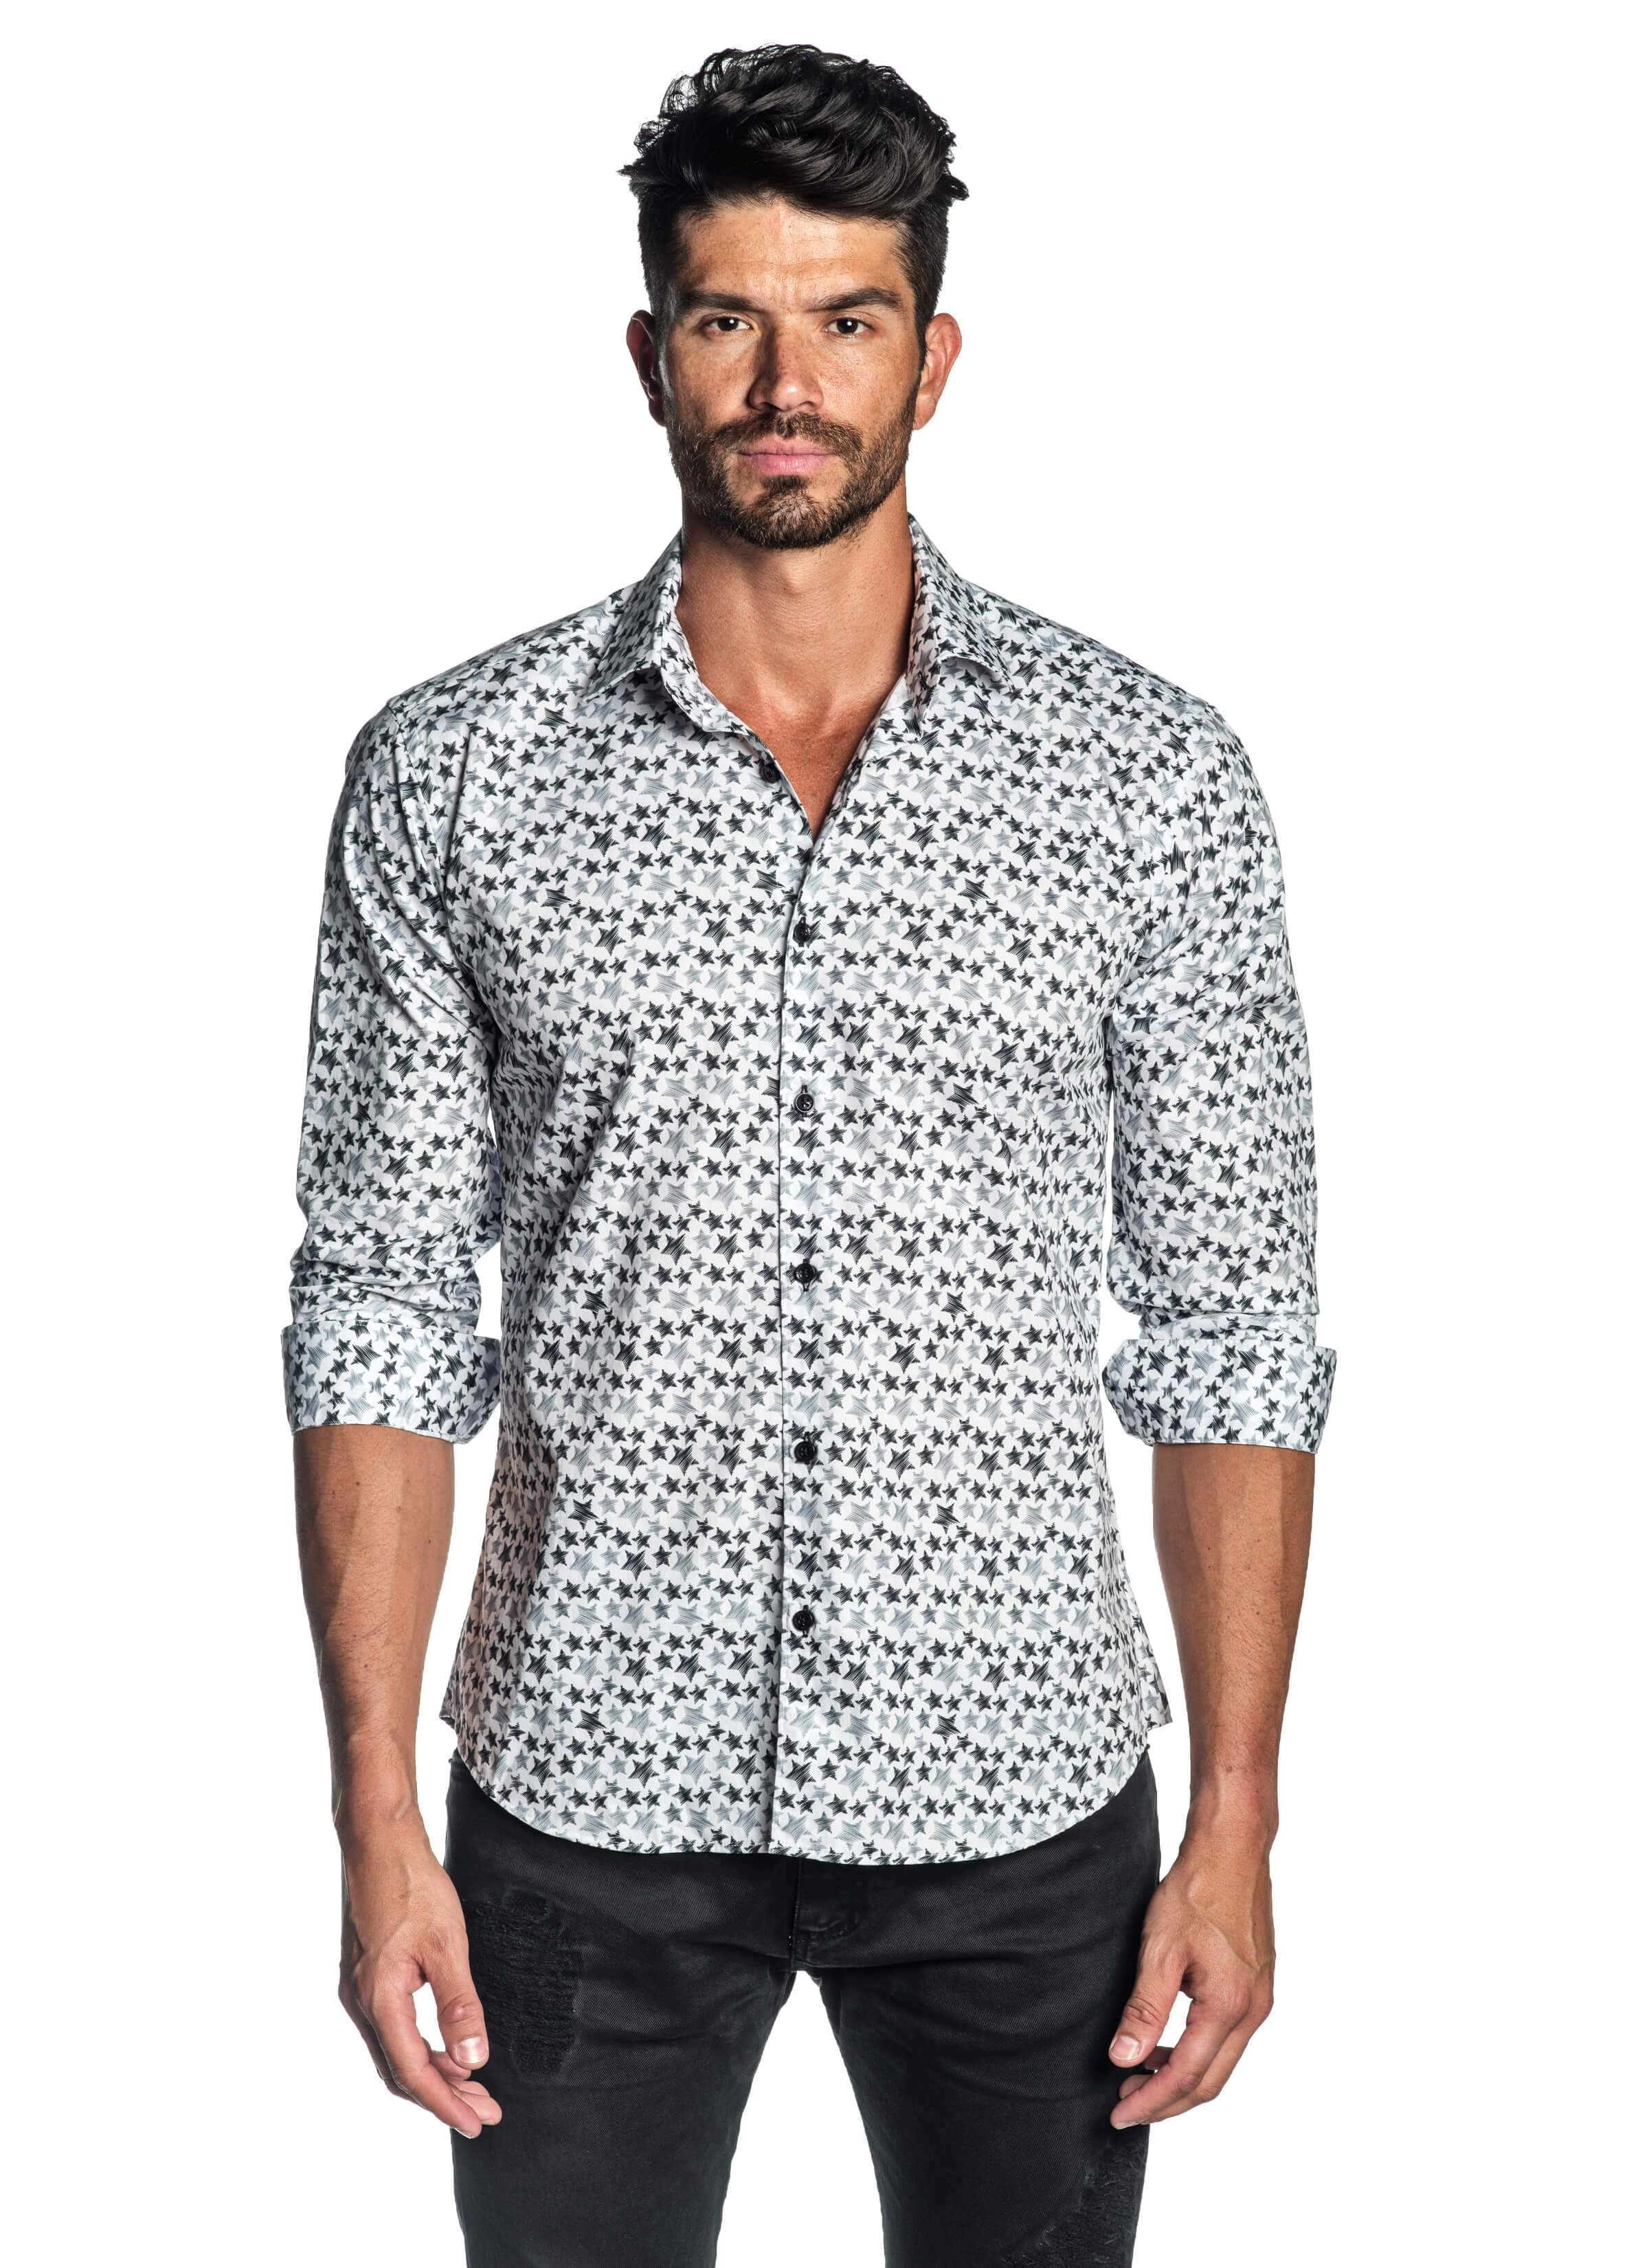 White Star Printed Shirt for Men - front T-518 - Jared Lang Collection